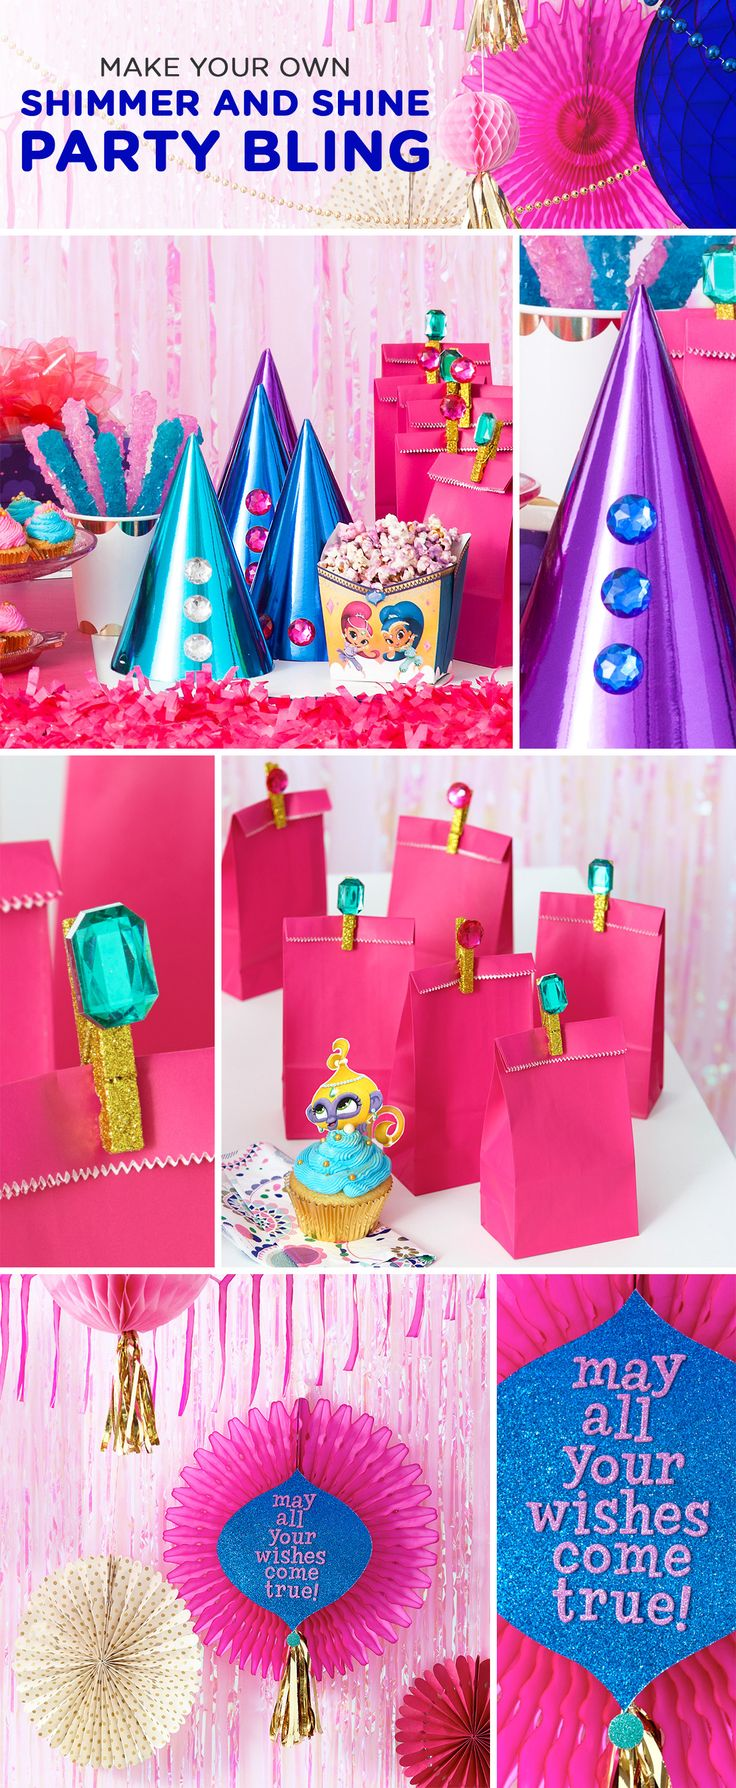 Birthday gift bags 5 cooking for oscar - Plan A Shimmer And Shine Birthday Party Goody Bagsgift